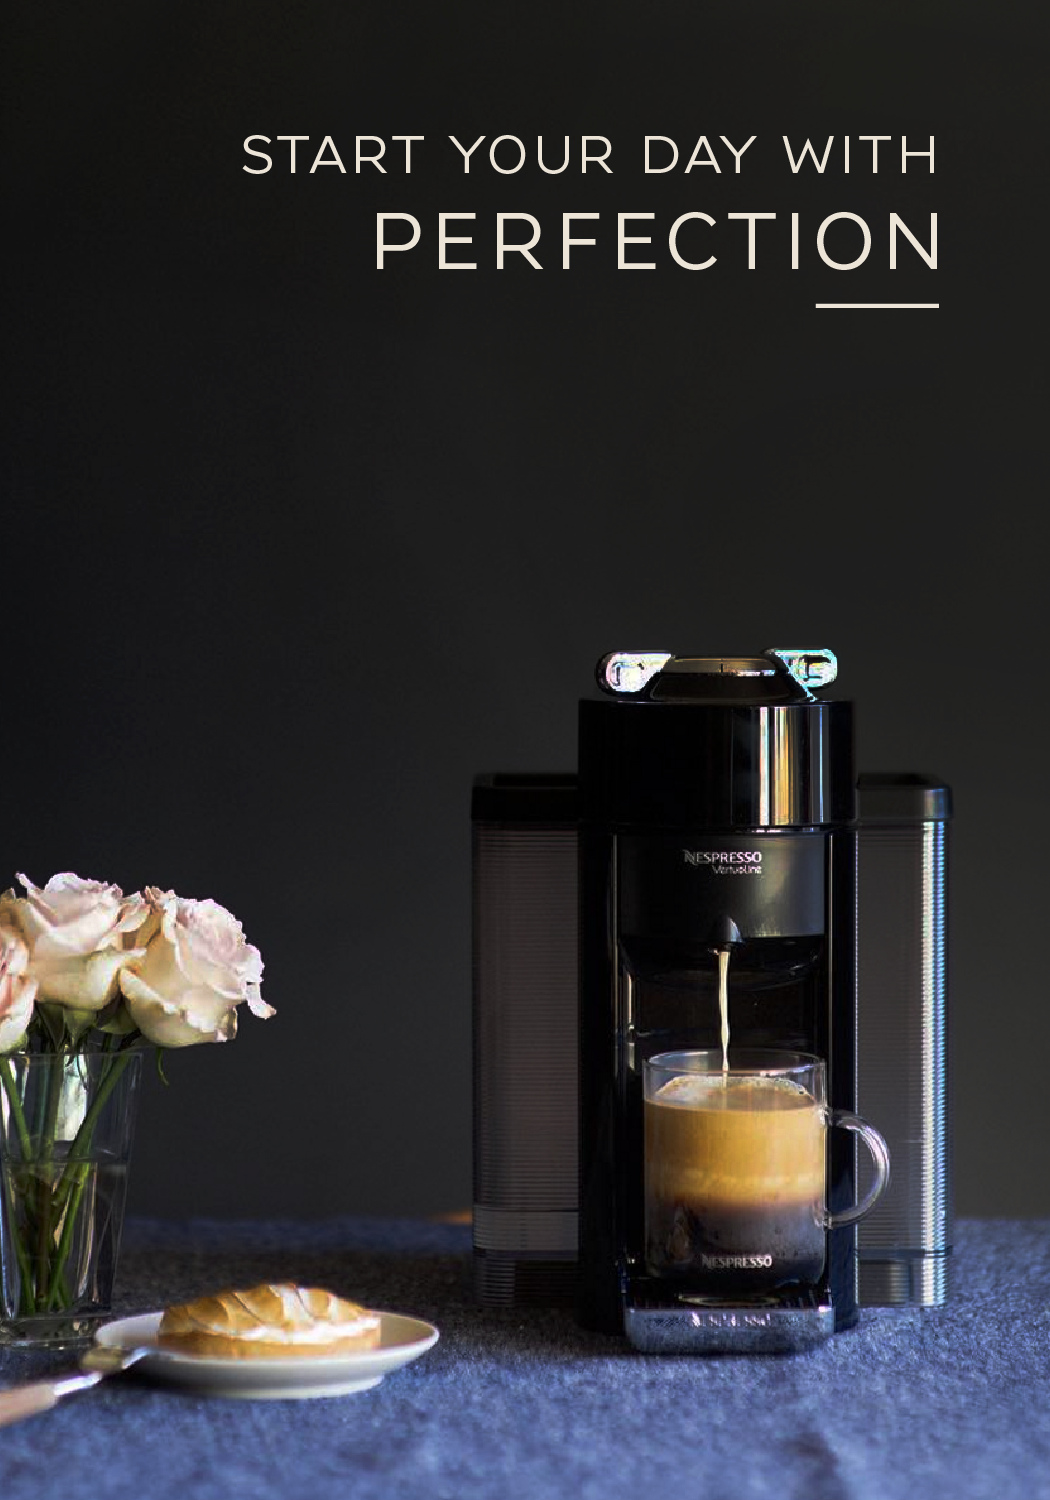 The VertuoLine System from Nespresso produces